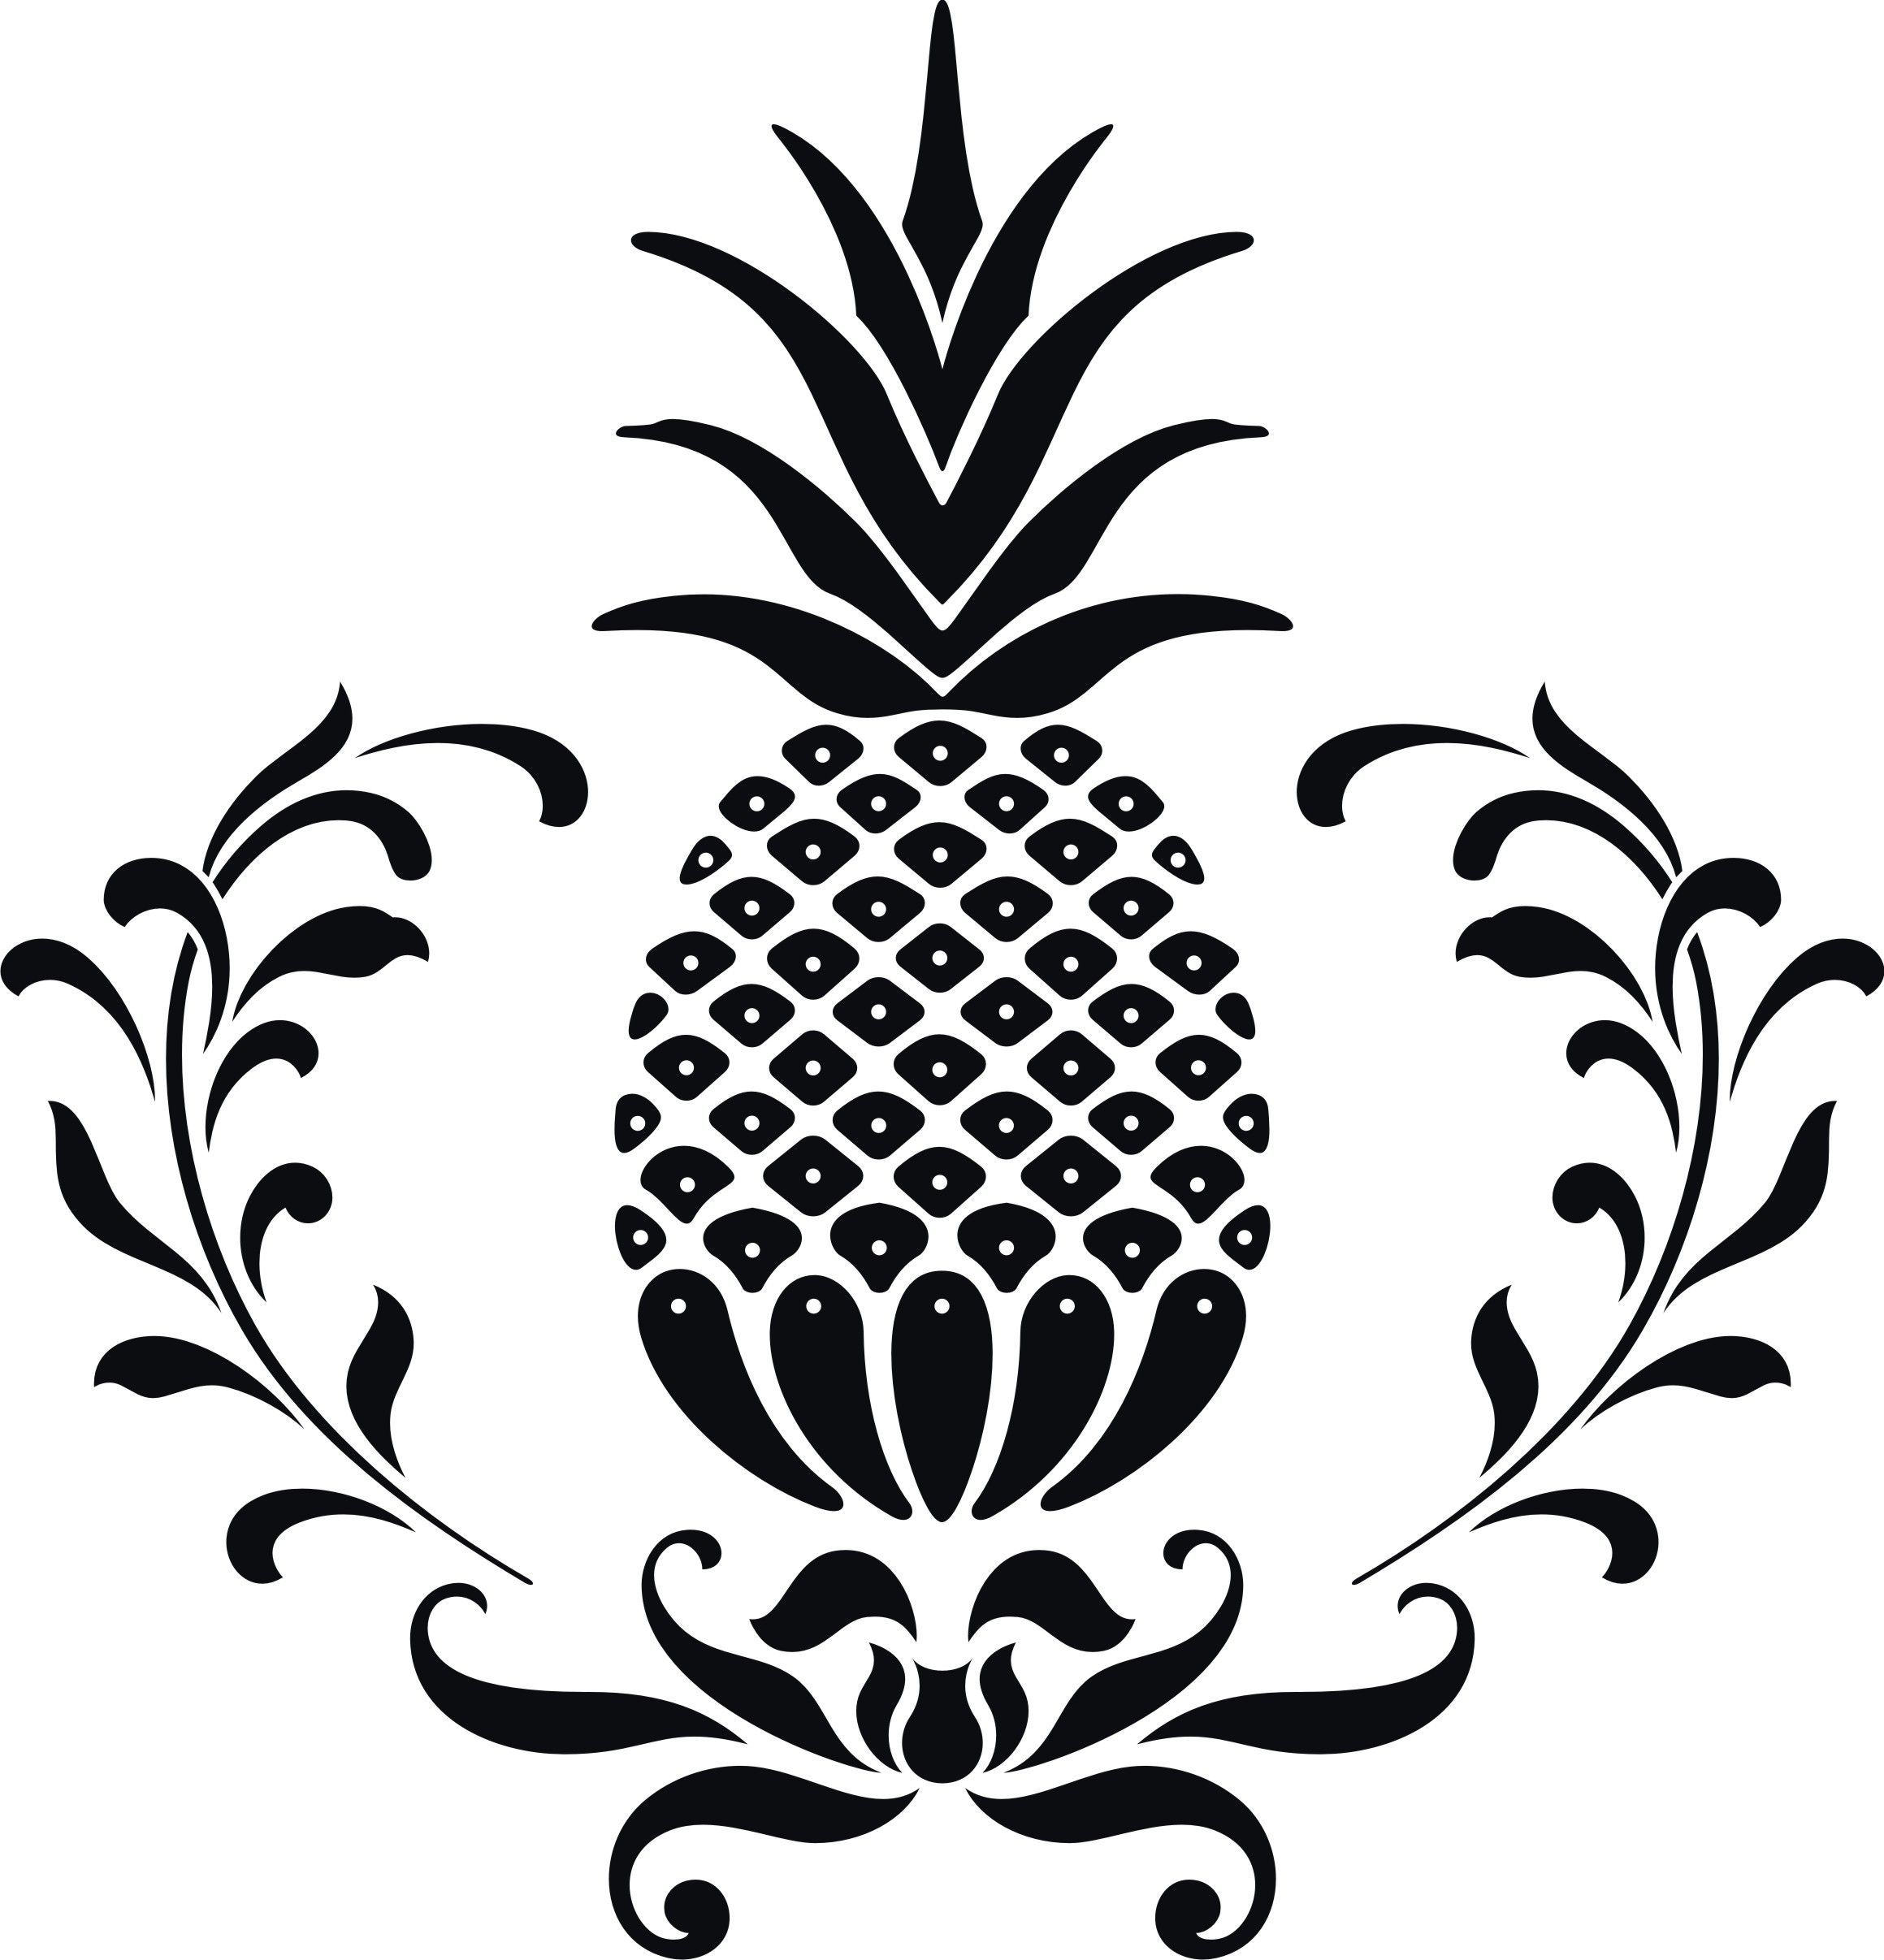 hospitality pineapple clip art || clipart panda | DIY ... for Clipart Pineapple Black And White  303mzq